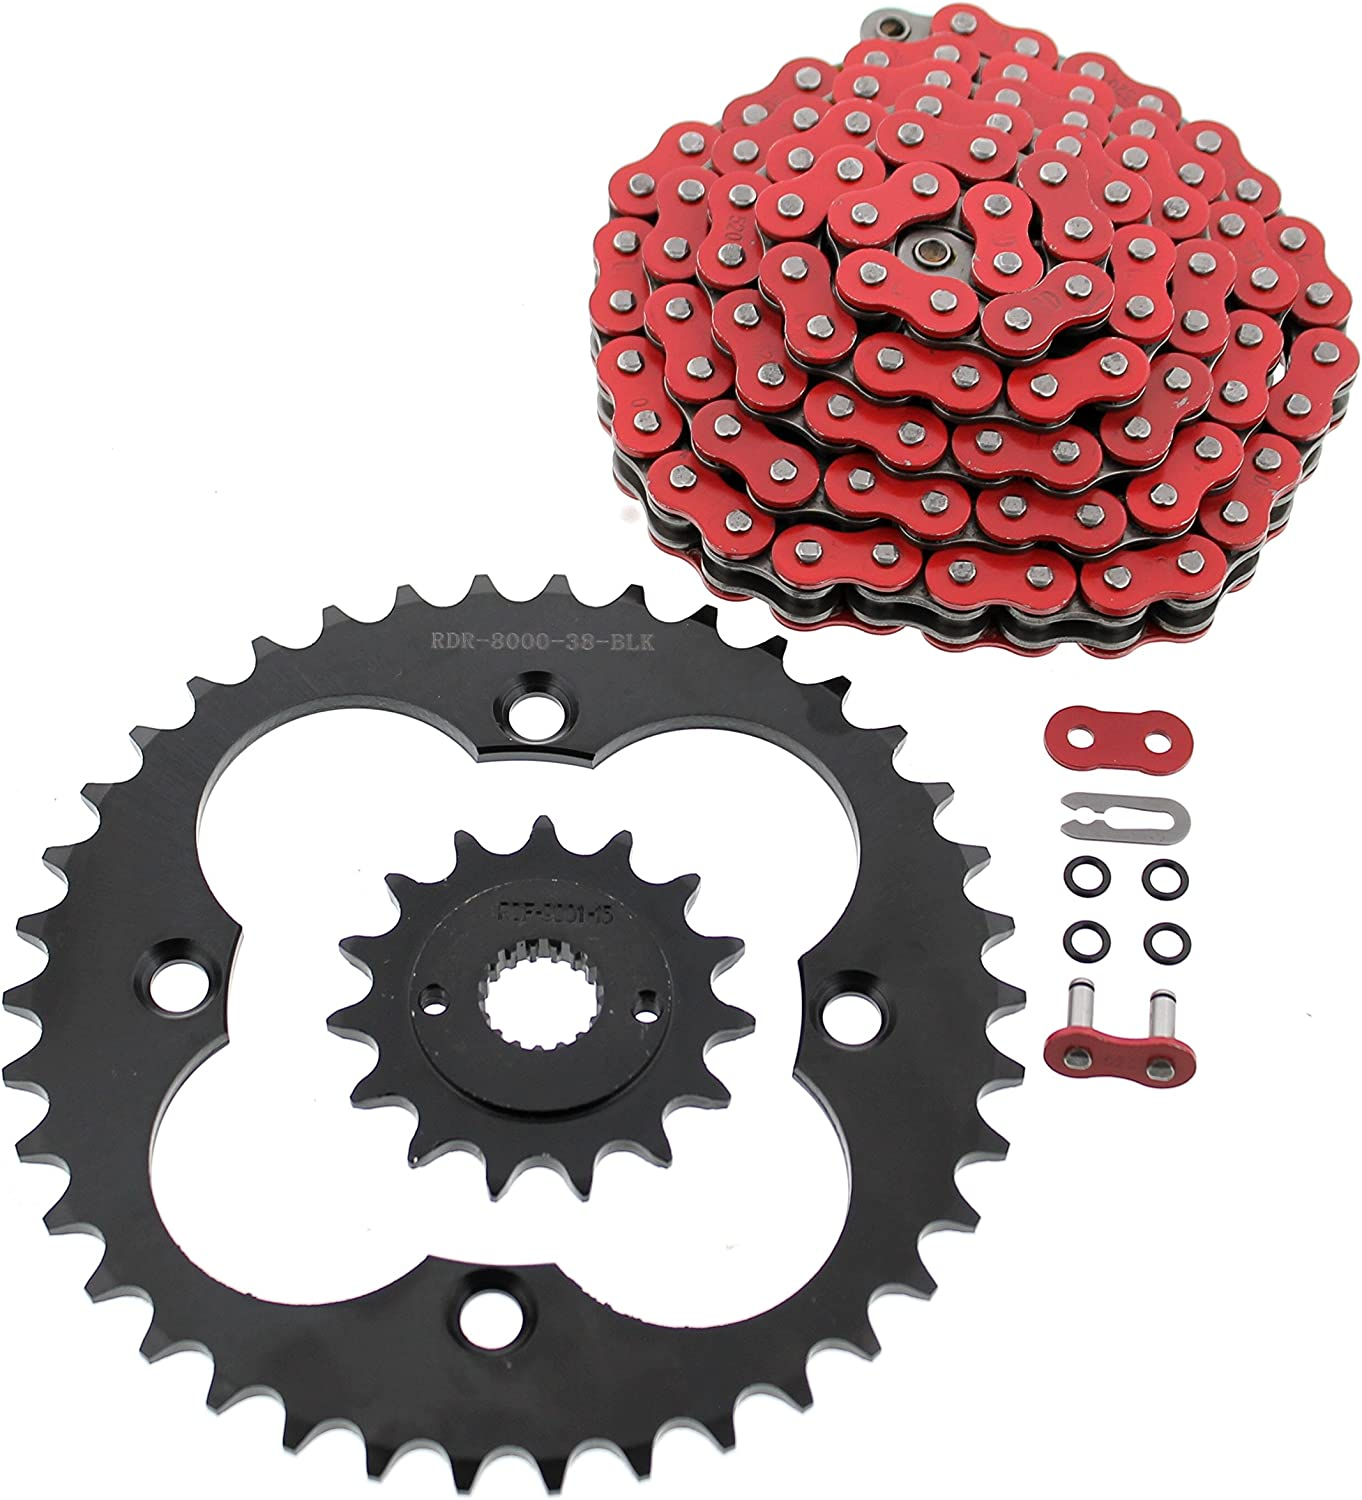 Primary Drive Rear Aluminum Sprocket 38 Tooth Red for Honda TRX 400EX 1999-2008